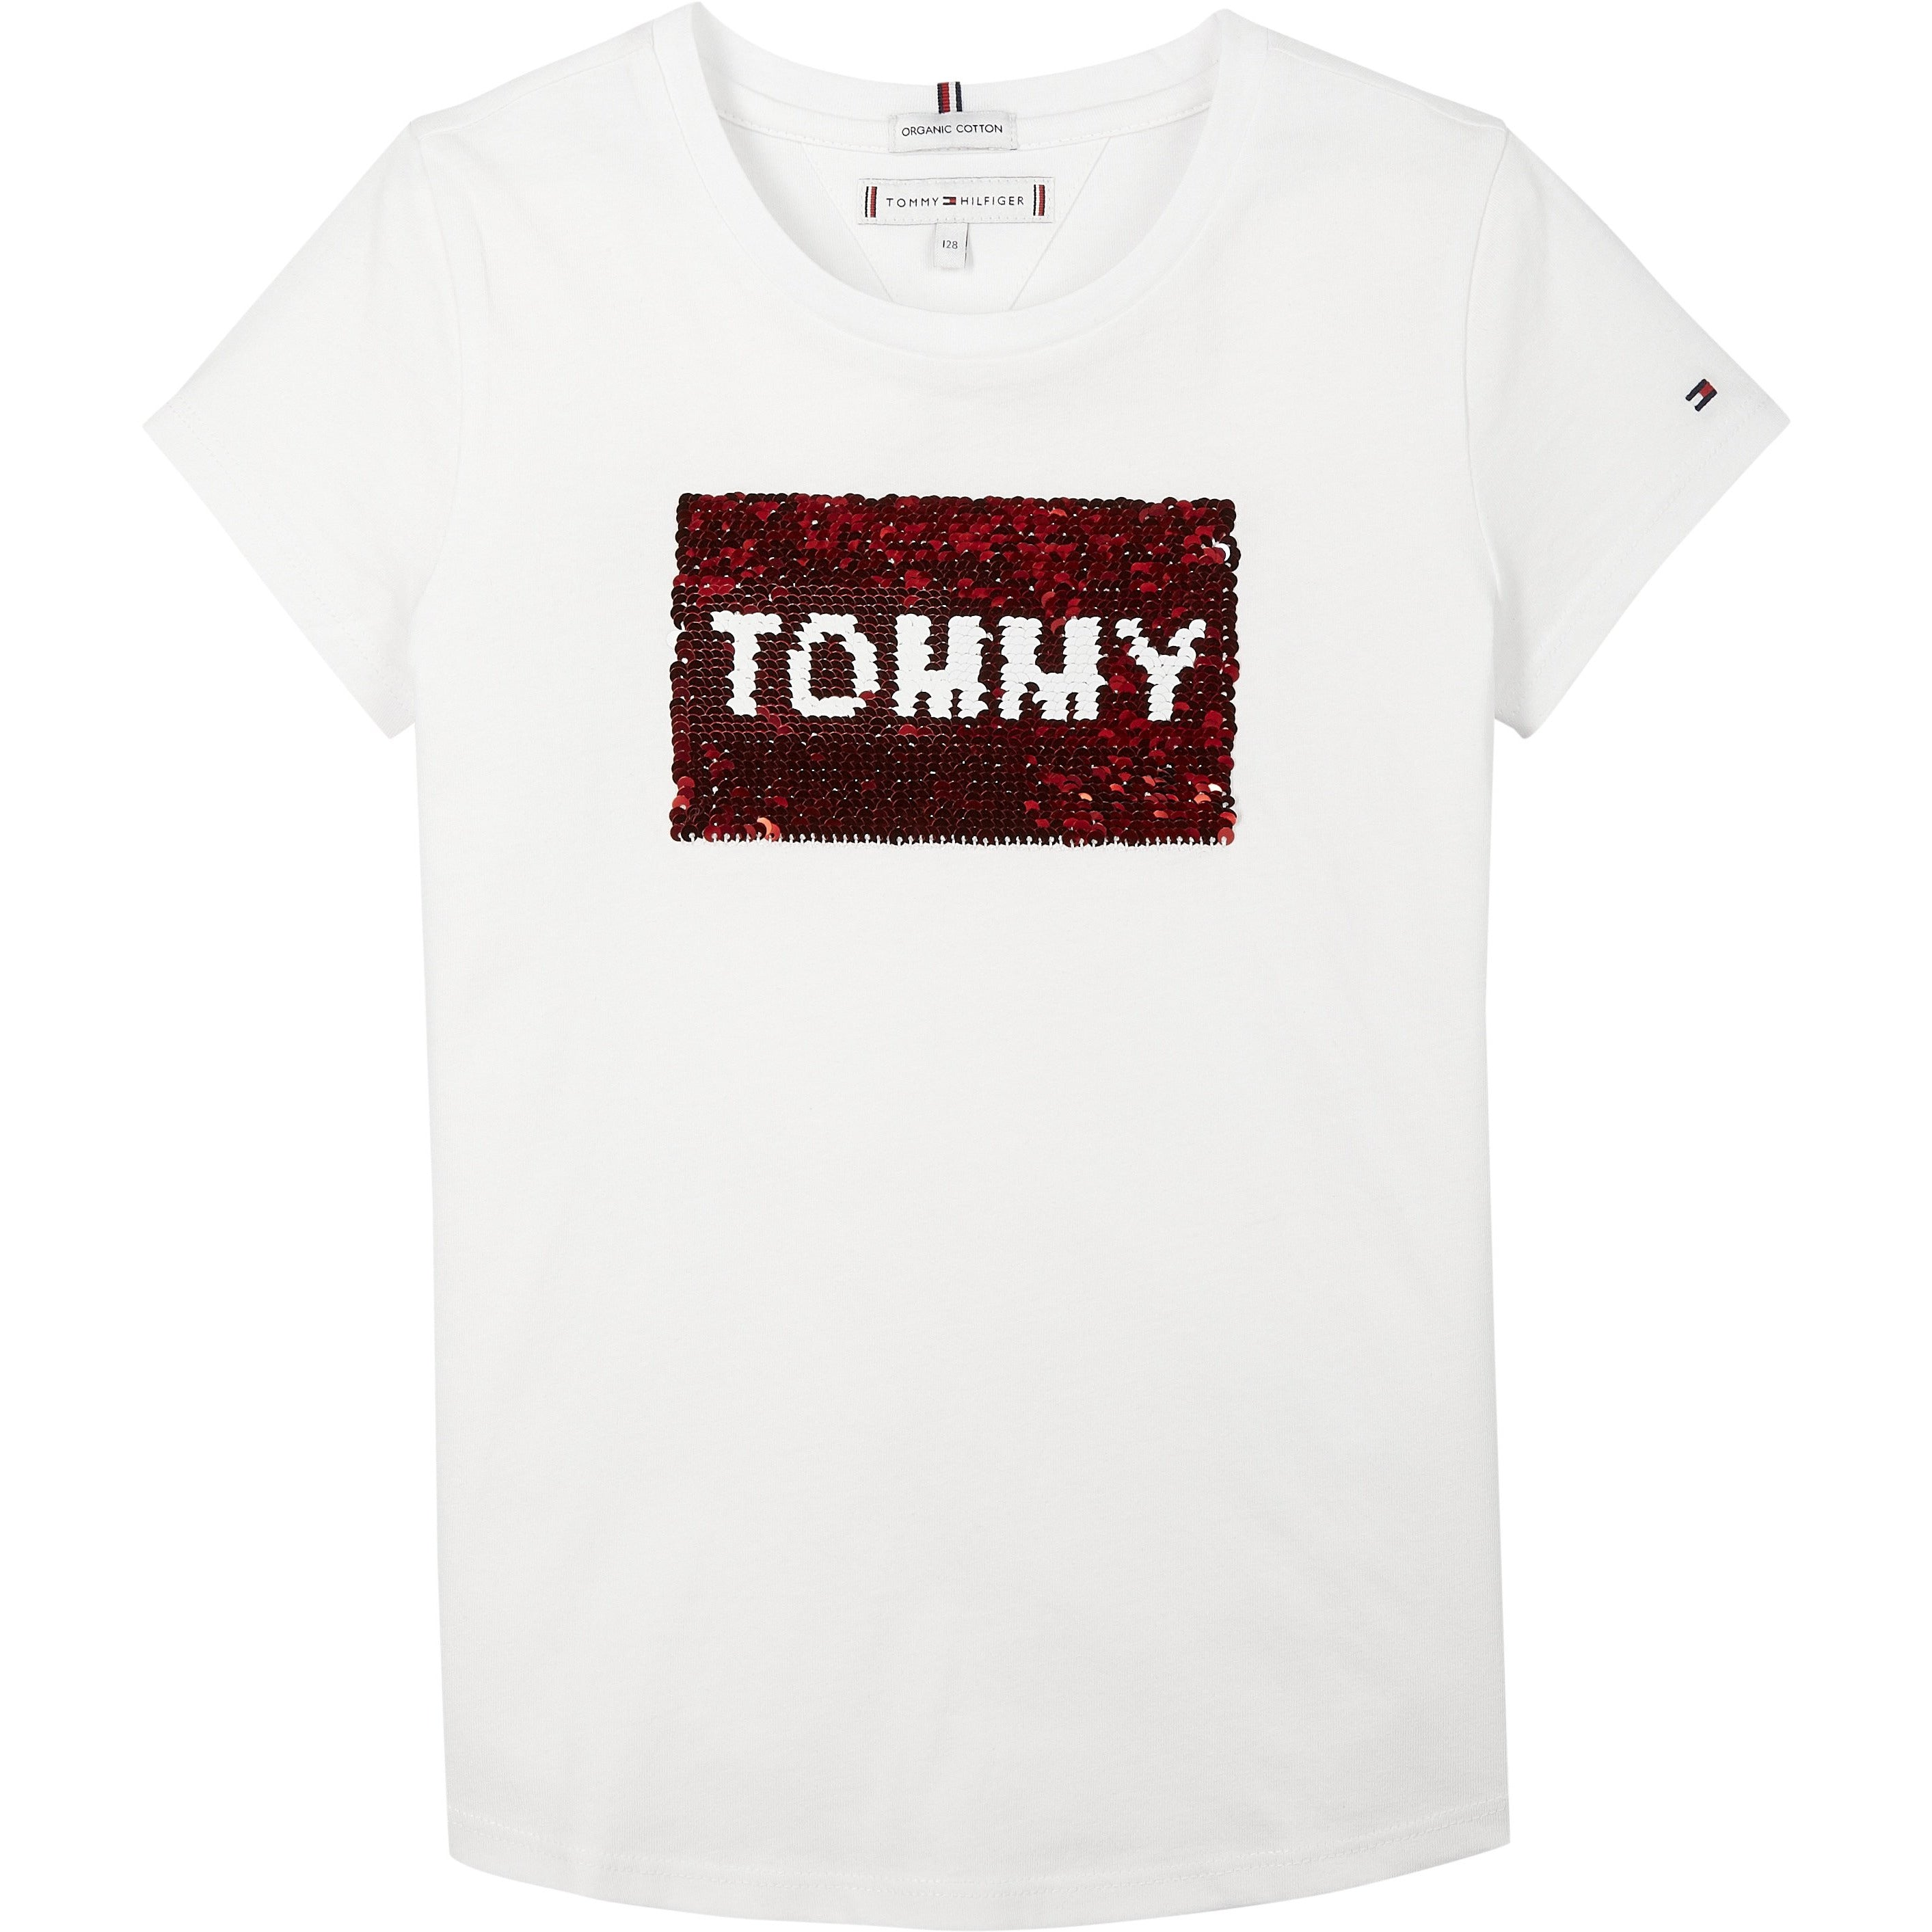 Tommy Hilfiger - Flag flip sequins tee s/s white - 3